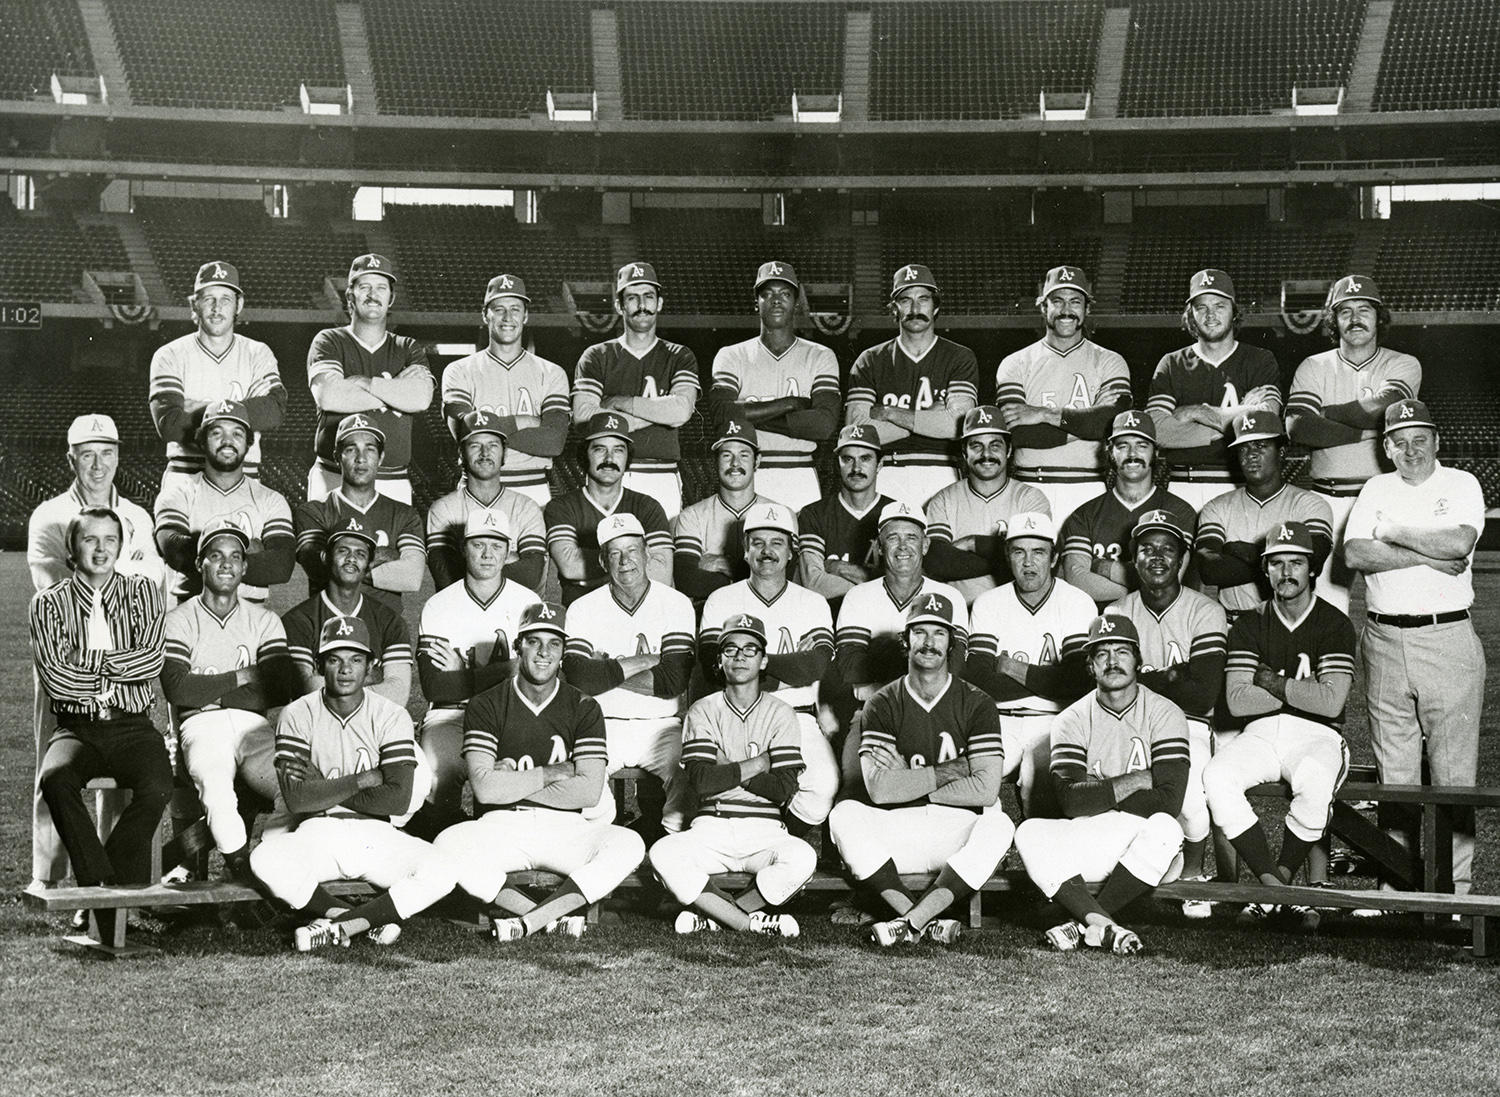 Of Bob Locker's three seasons in Oakland, his best came in 1972, when he posted an ERA of 2.65 for 78 innings. In this team photo, Bob Locker sits in the last row, fourth from the right. (National Baseball Hall of Fame and Museum)